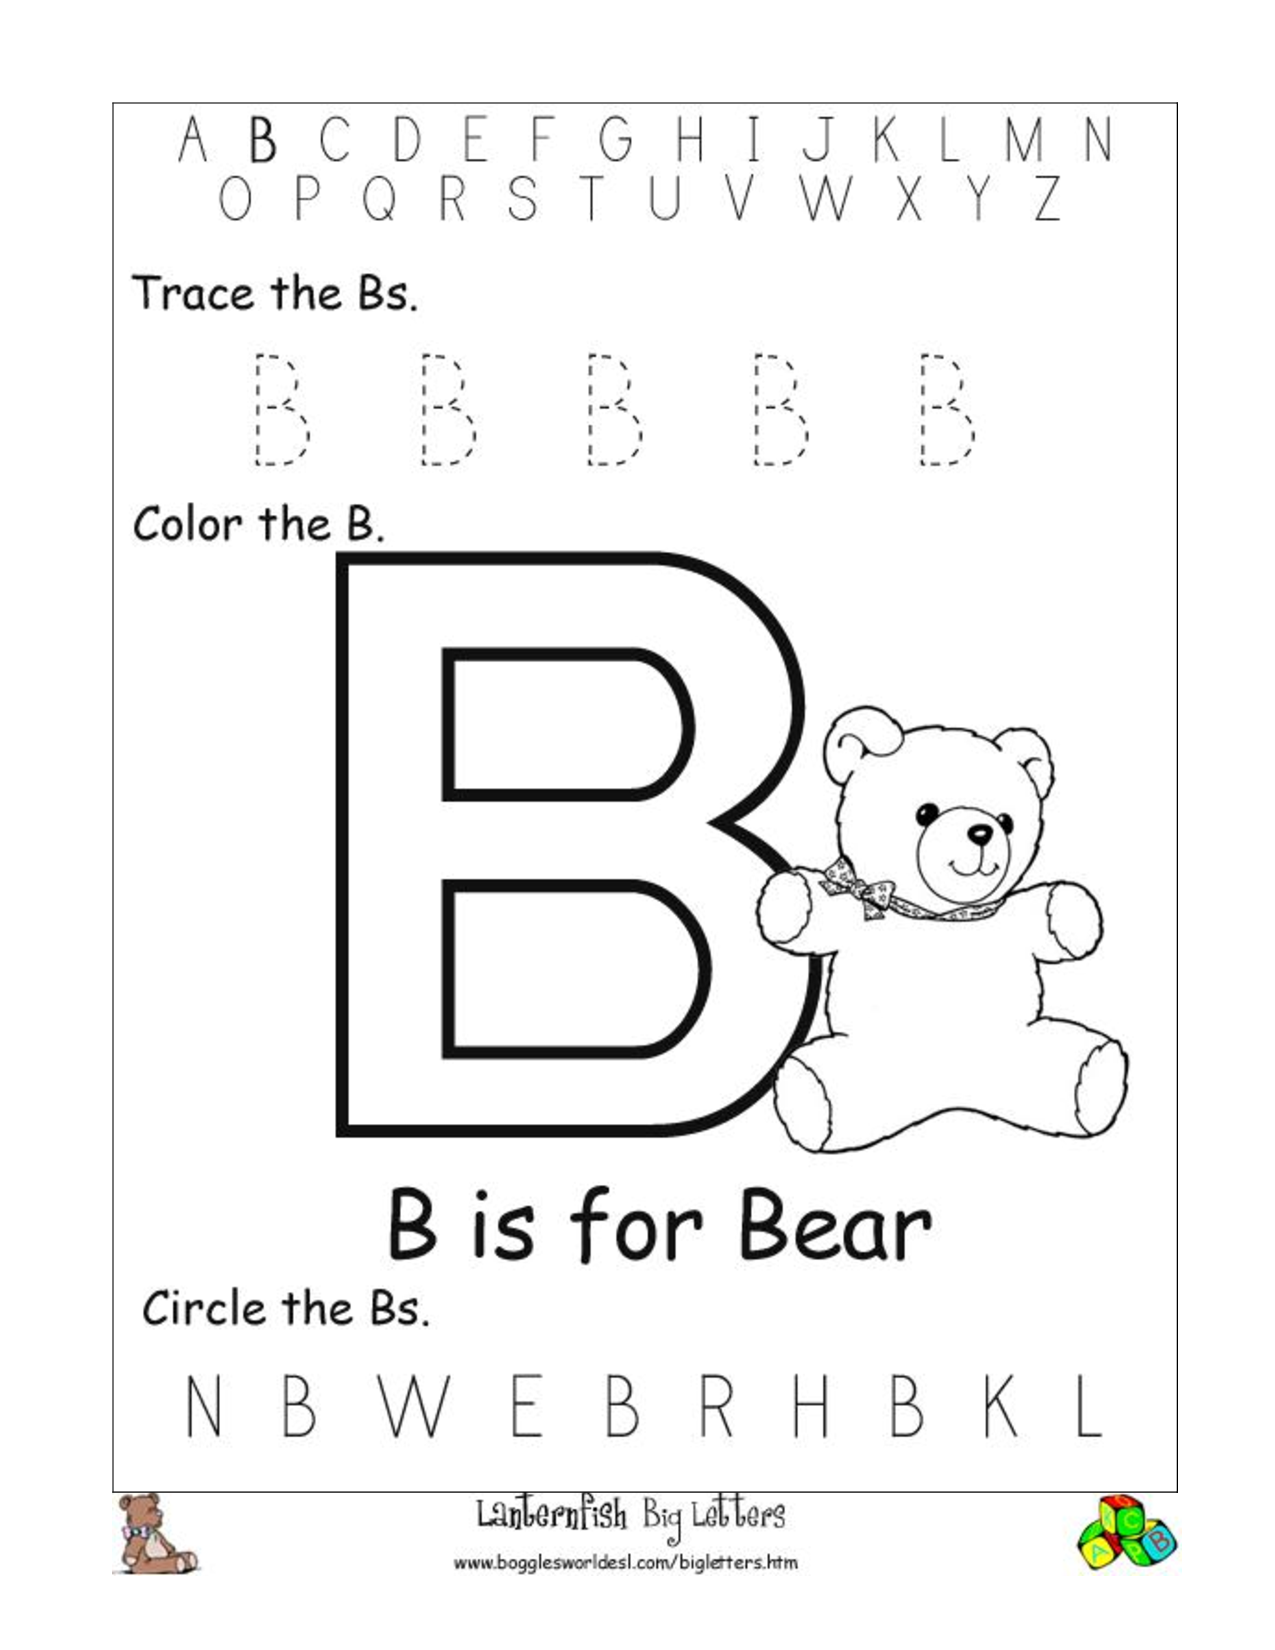 Worksheets Letter B Worksheets Kindergarten pinterest the worlds catalog of ideas worksheets alphabet recognition tracing letter car pictures